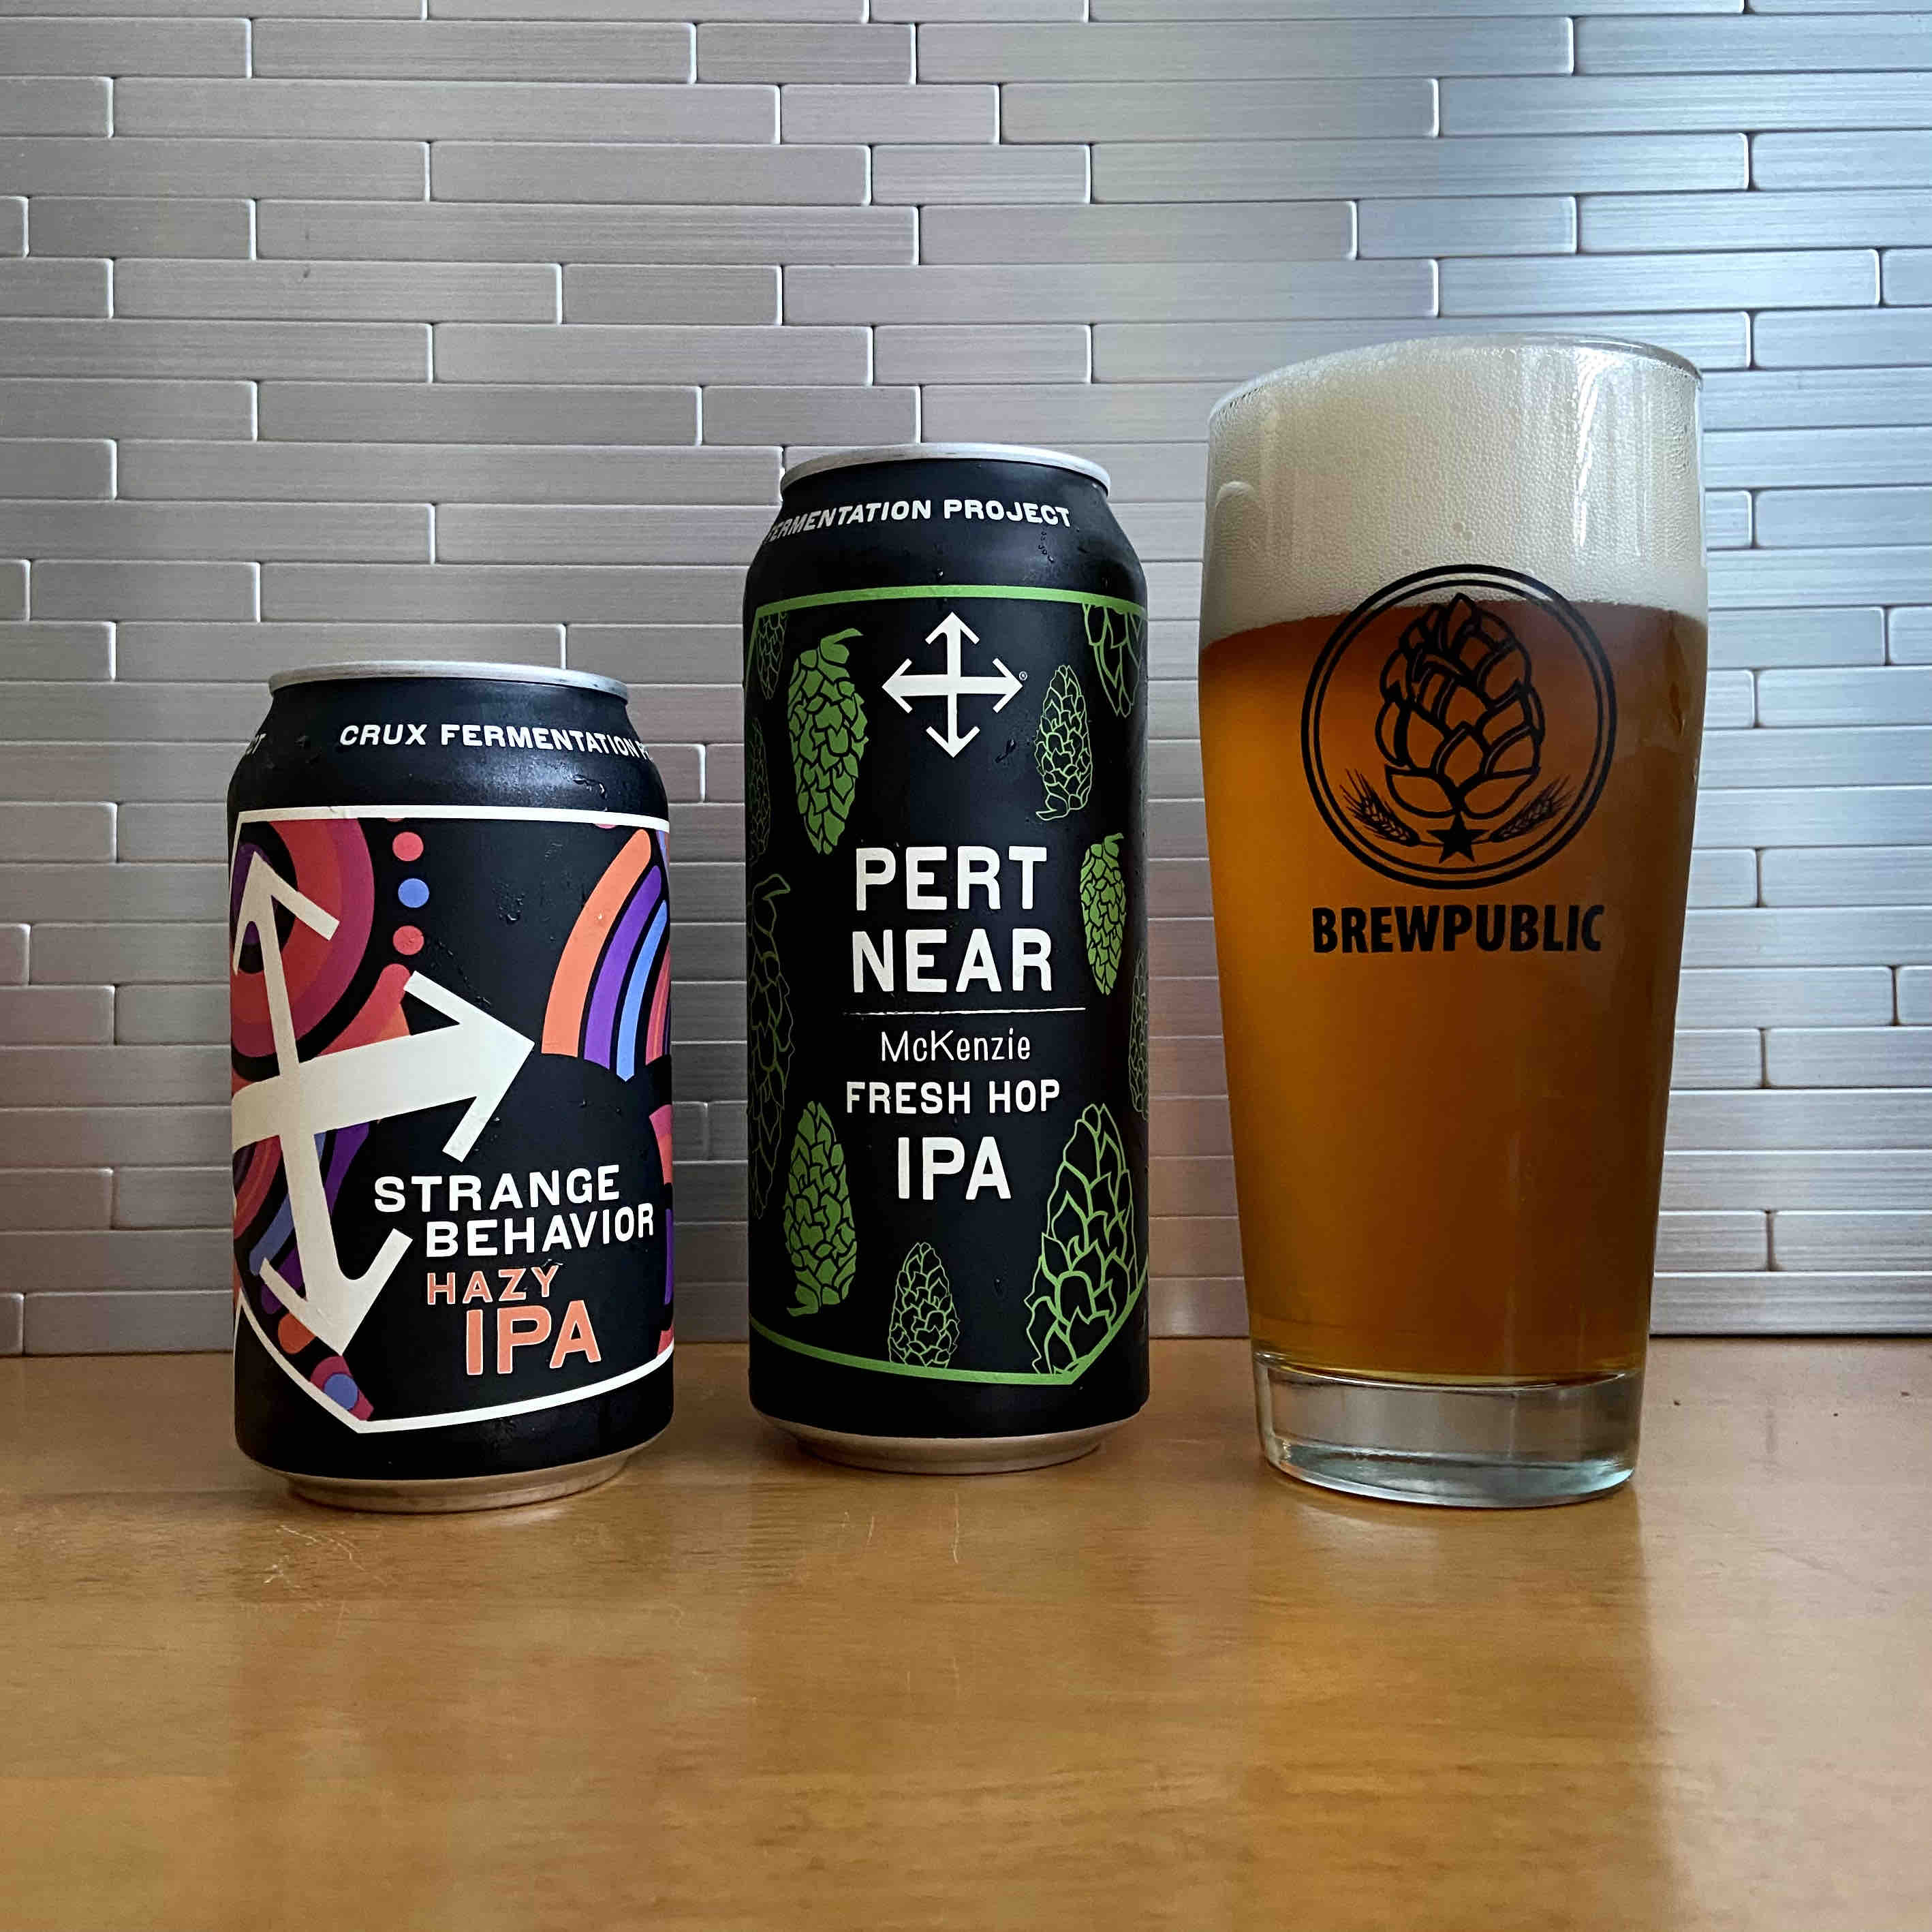 Strange Behavior Hazy IPA and a pour of a pint can of Pert Near Fresh Hip IPA from Crux Fermentation Project.